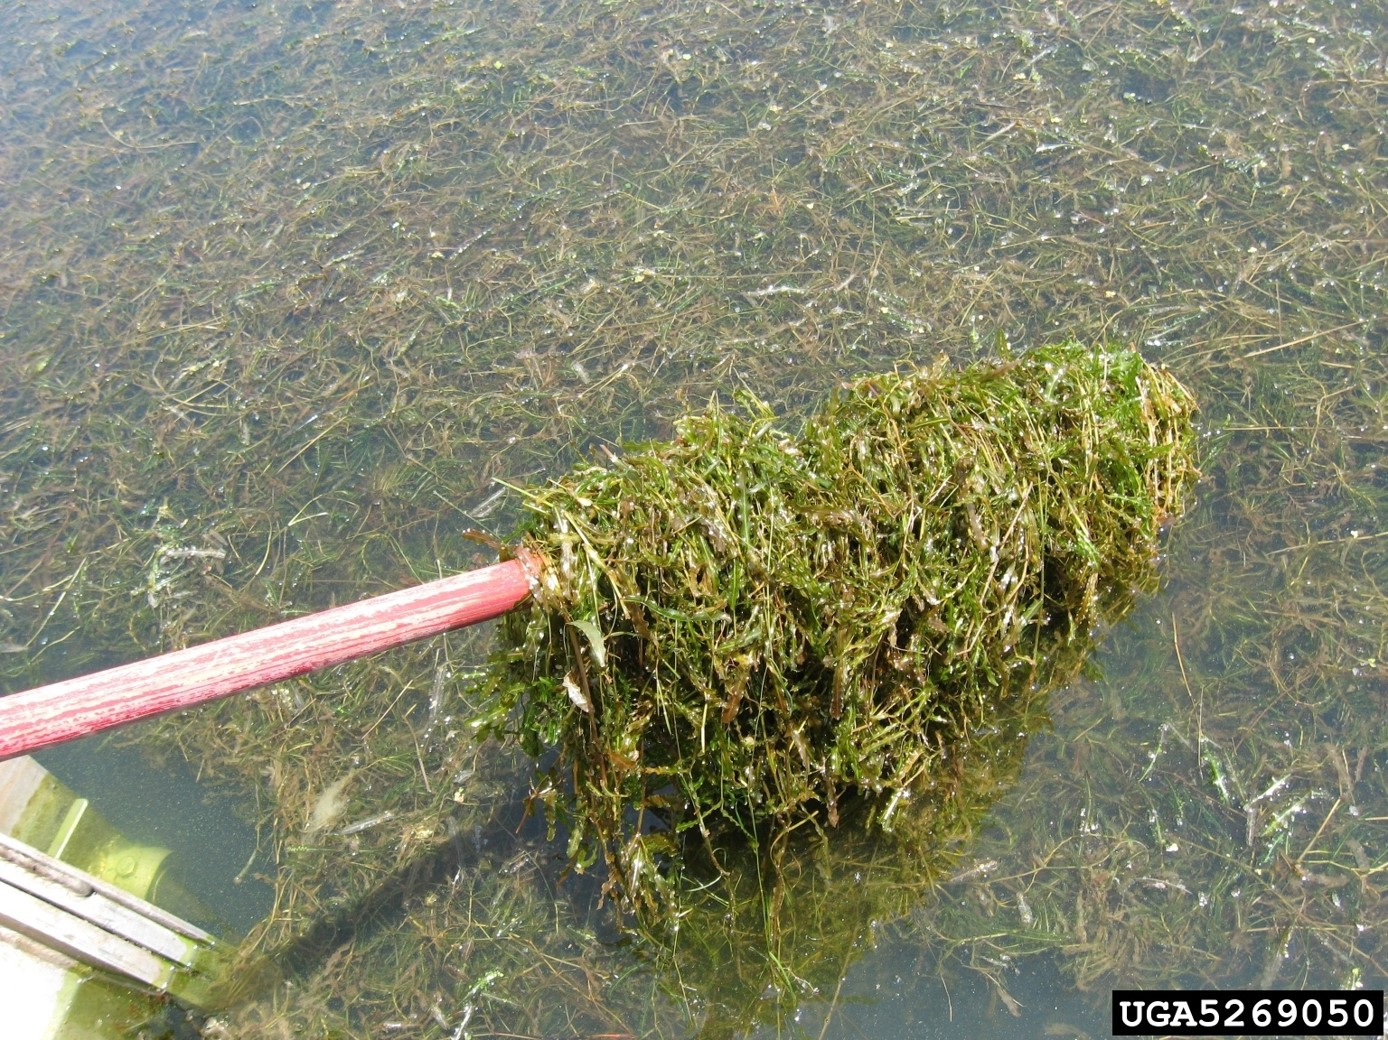 Infestation in a Lake